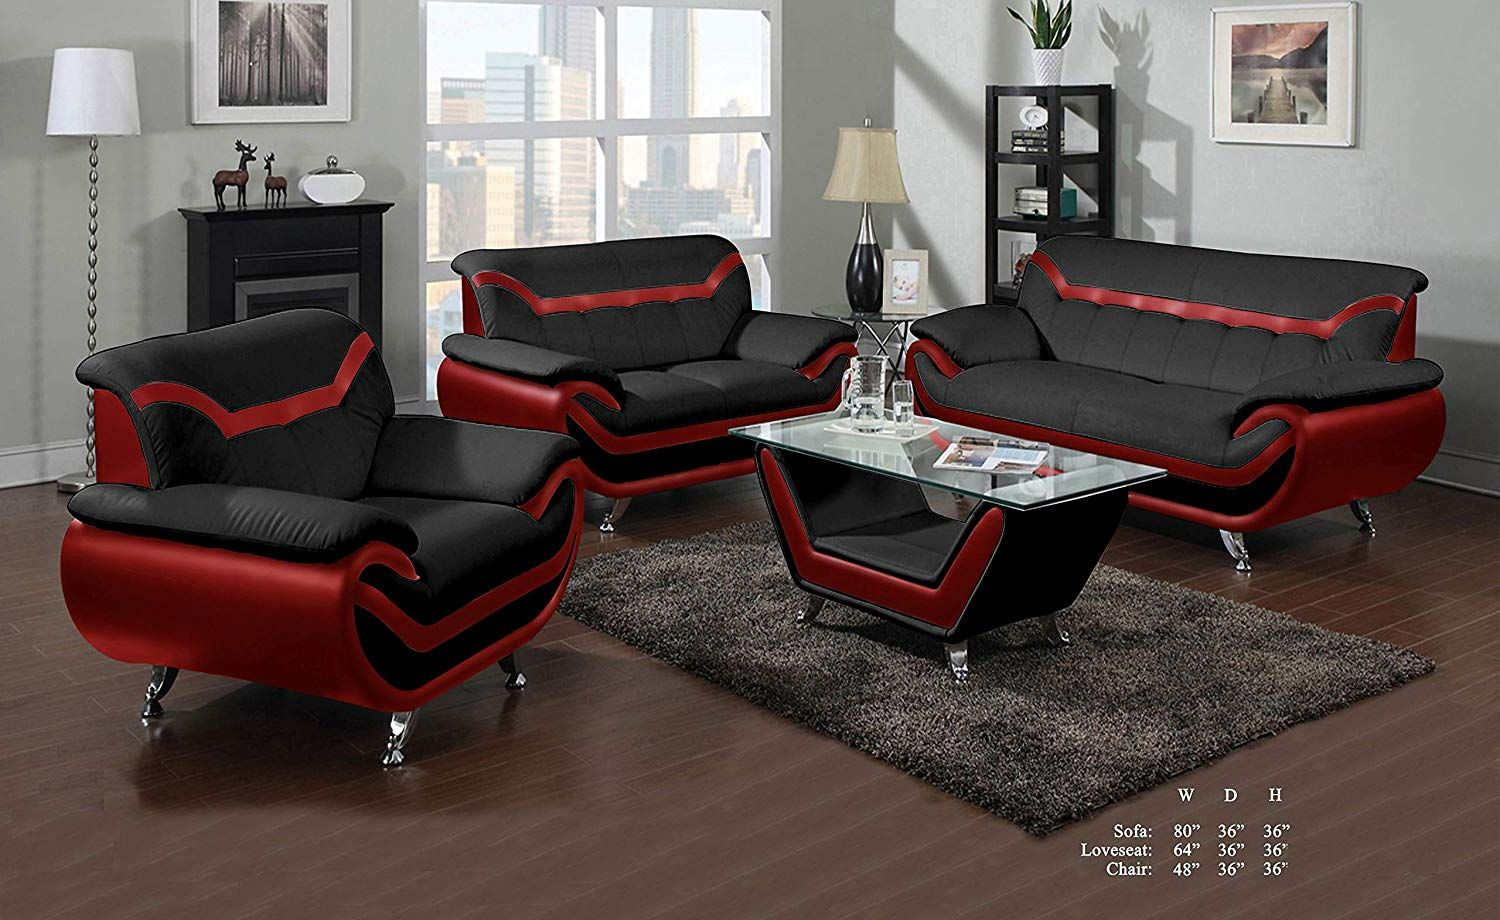 Pin On Living Room Sets Luxury Home Furniture Ideas #sofa #and #chair #living #room #set